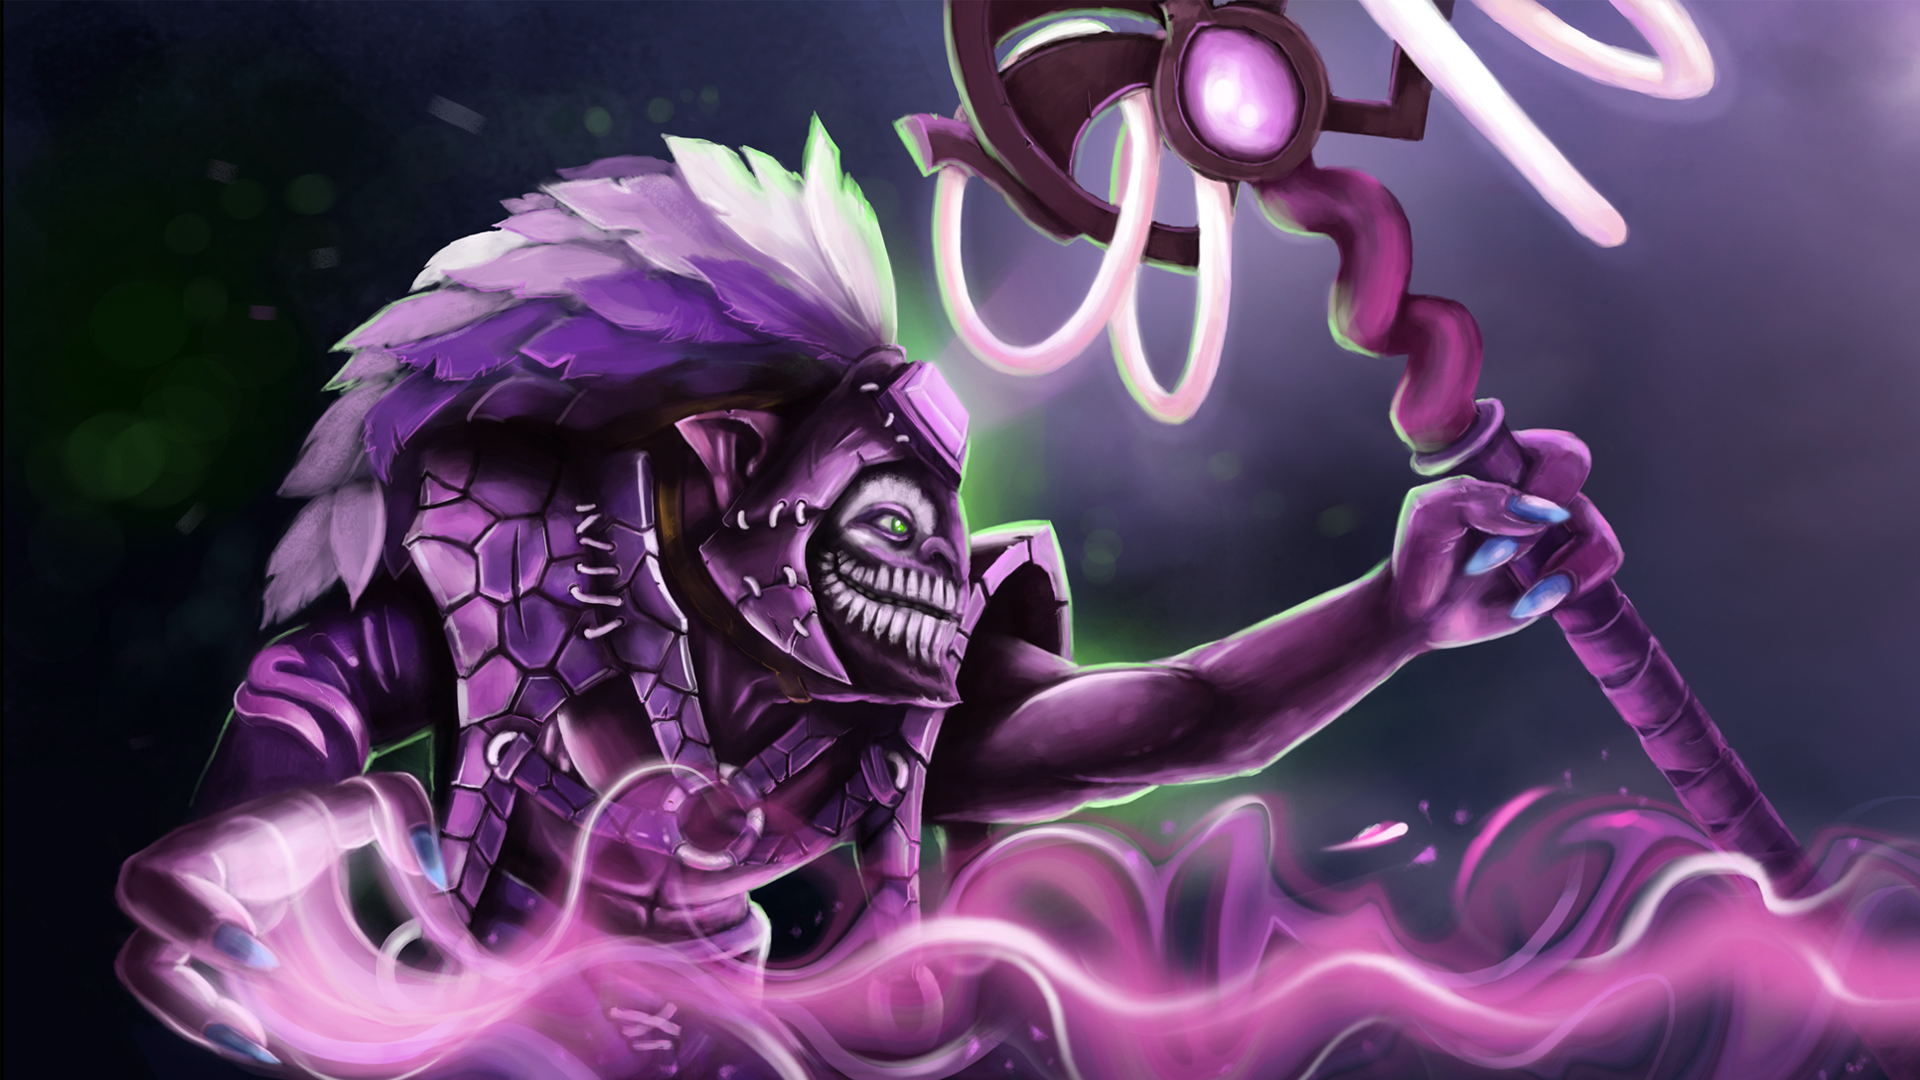 dazzle dota 2 art wallpaper hd